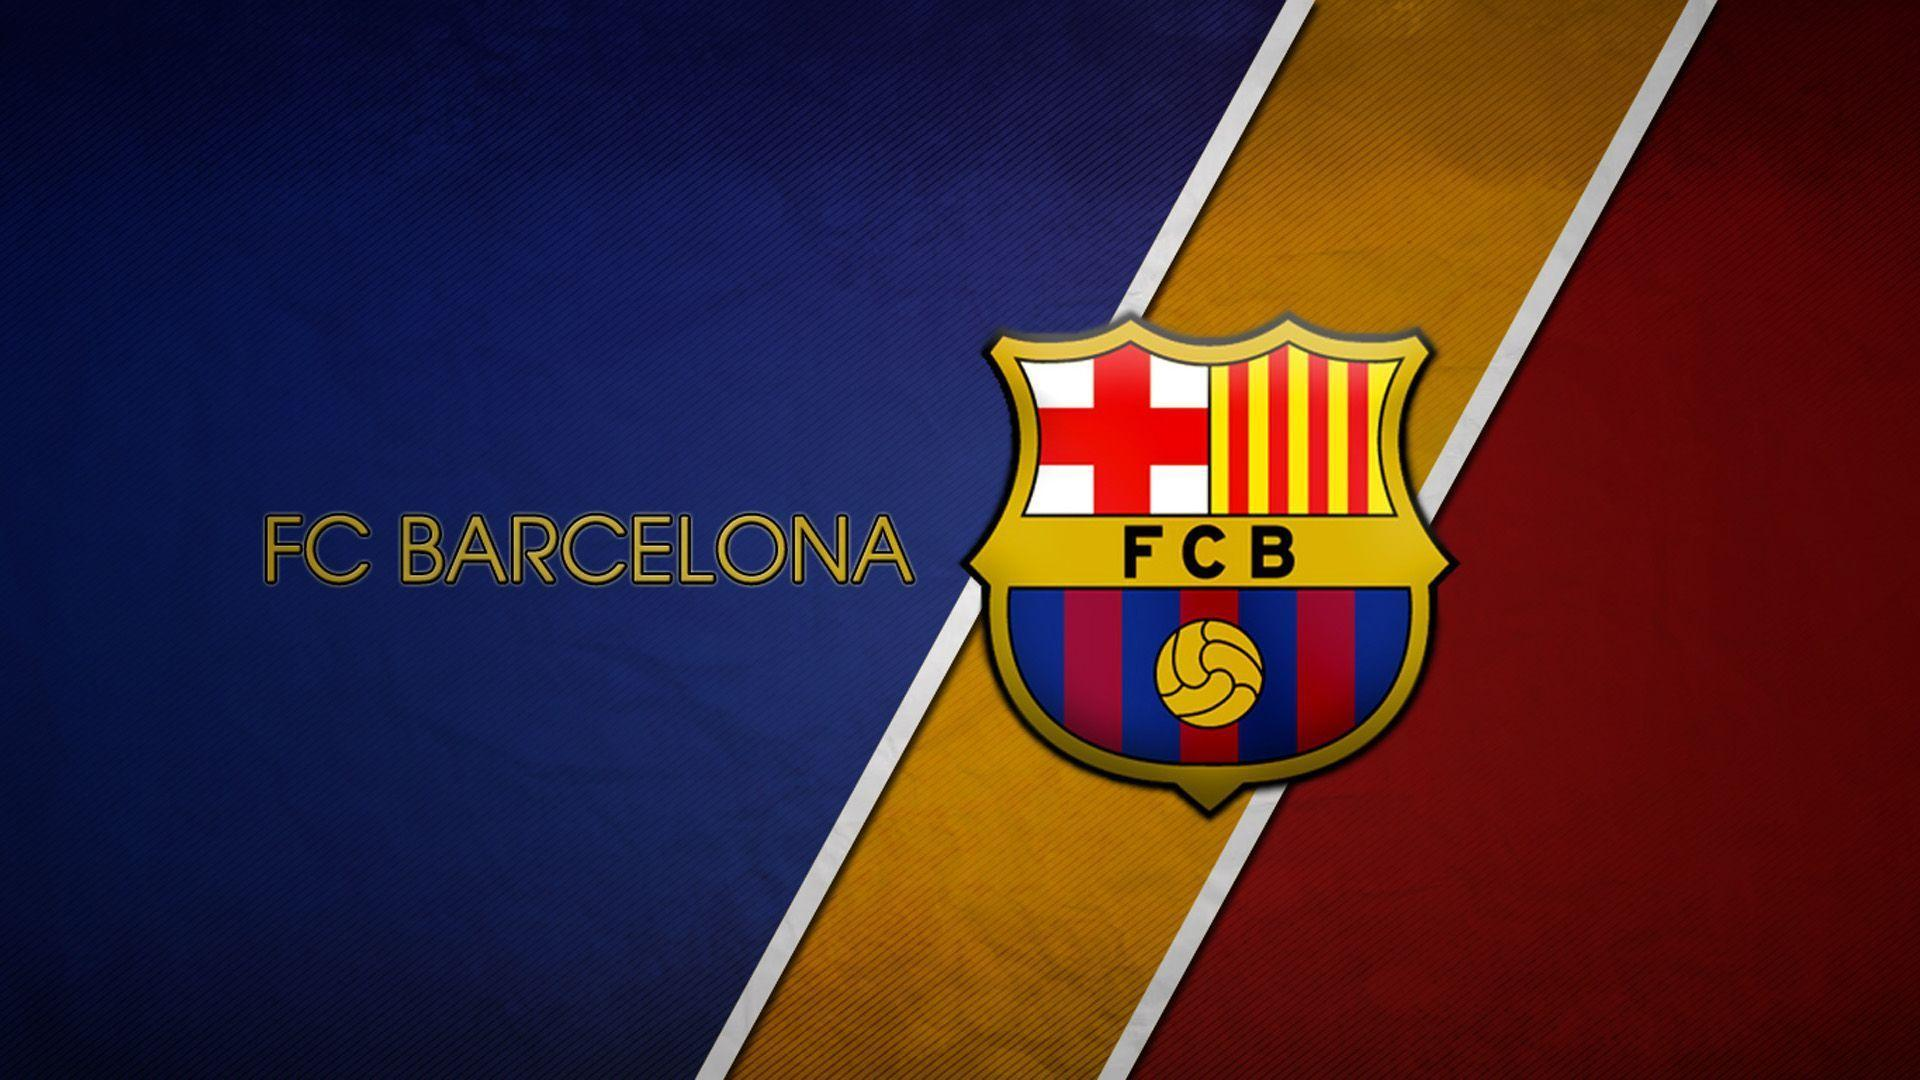 FC Barcelona Wallpapers 2016 1920x1080